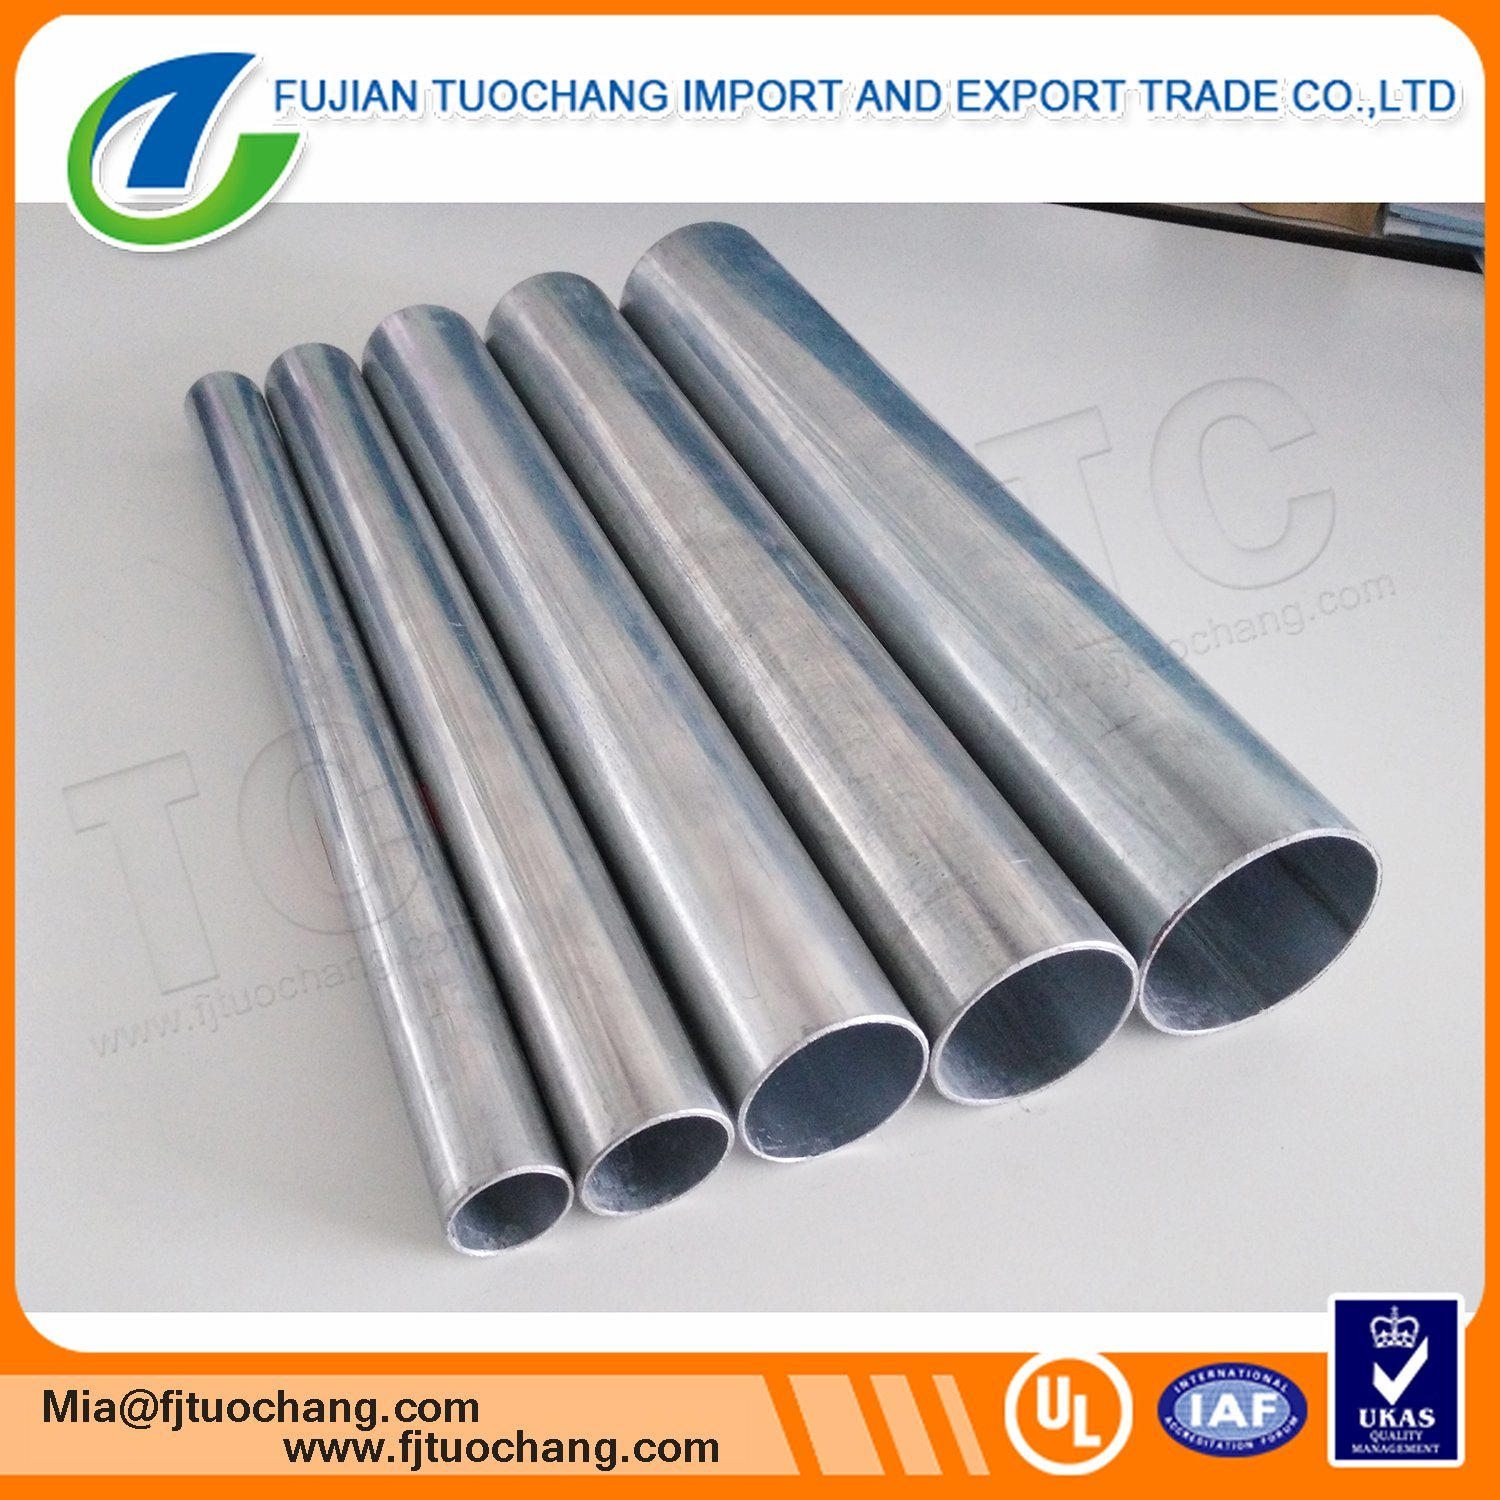 China Hot Dip Galvanized Electrical Cable Wiring Conduit Photos In